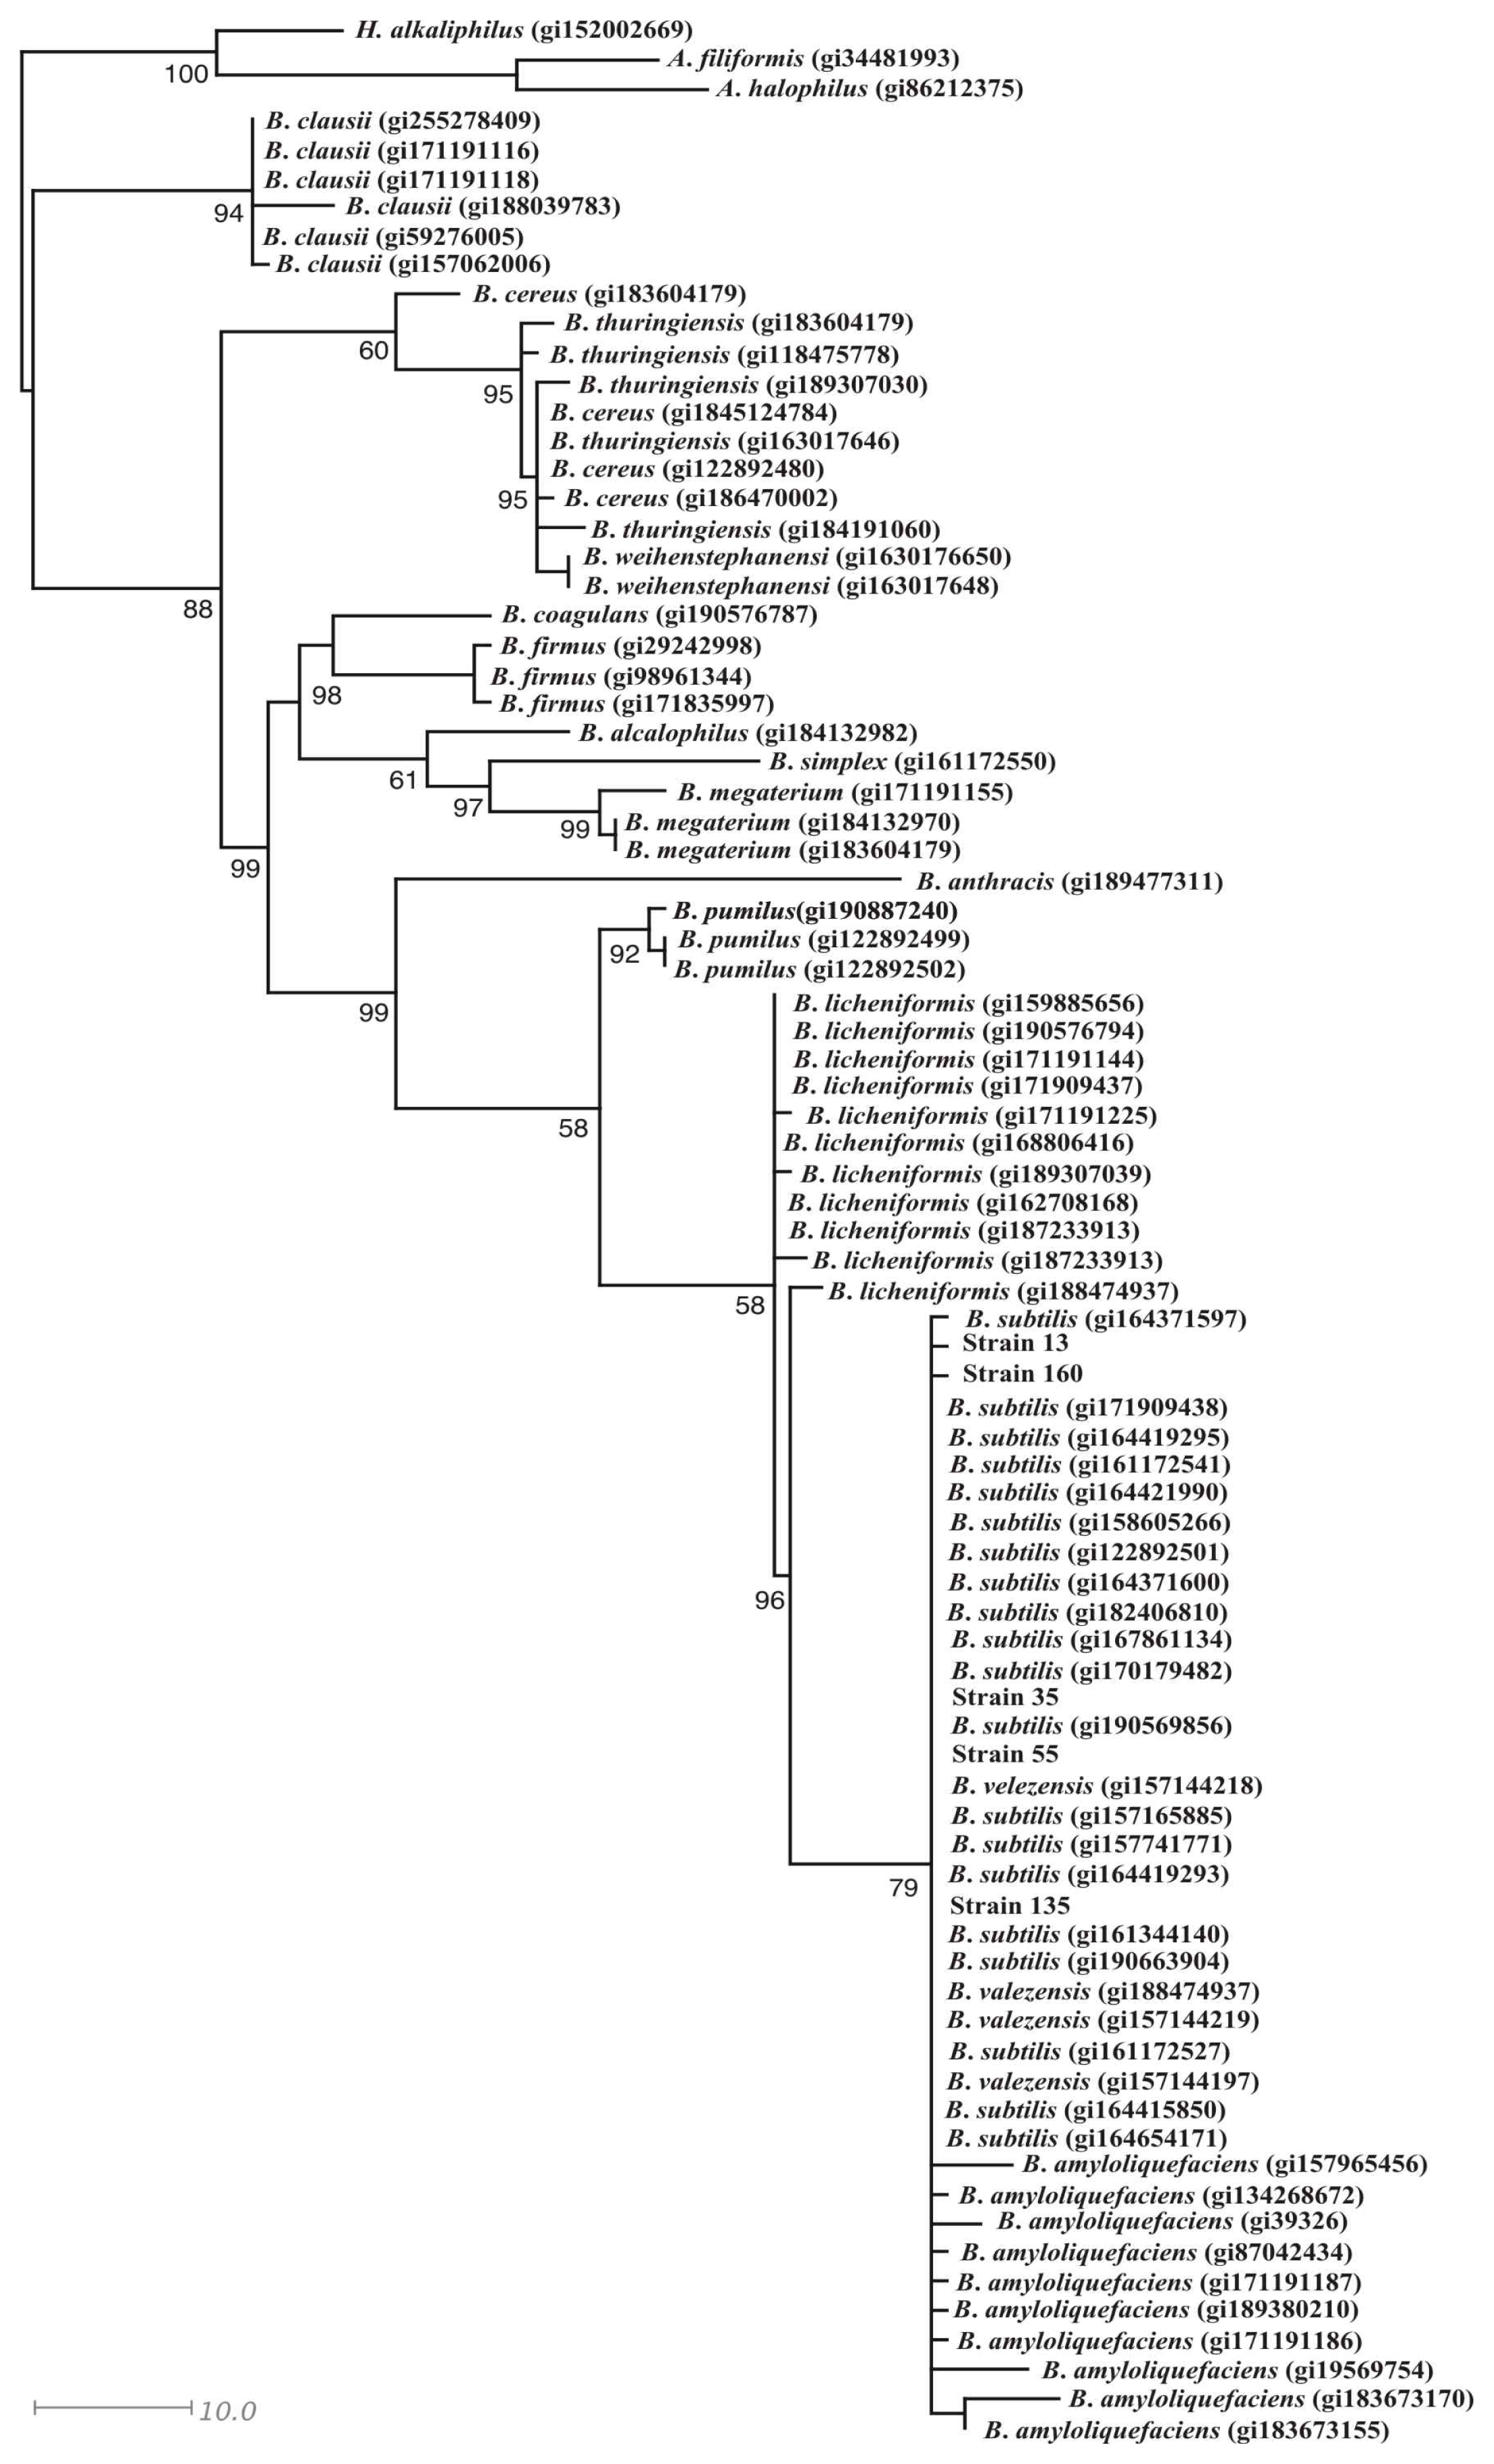 phylogenetic analysis of thermophilic bacteria On the basis of normal evolutionary distances, the phylogenetic tree indicates  that all bacteria investigated in this study with a maximum growth temperature.